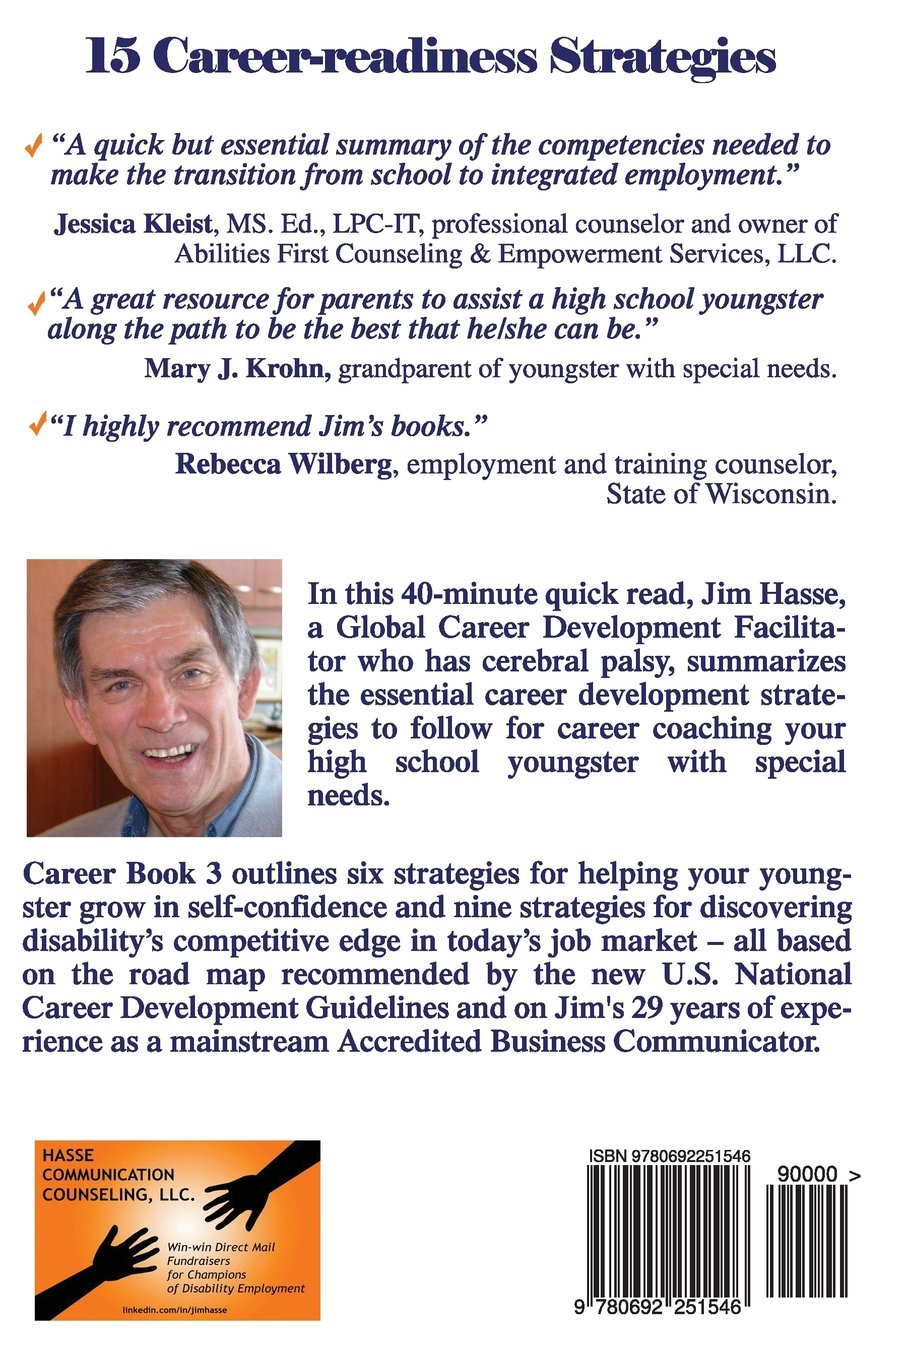 career book career readiness strategies for parents of high career book 3 15 career readiness strategies for parents of high school students special needs career readiness series volume 3 jim hasse